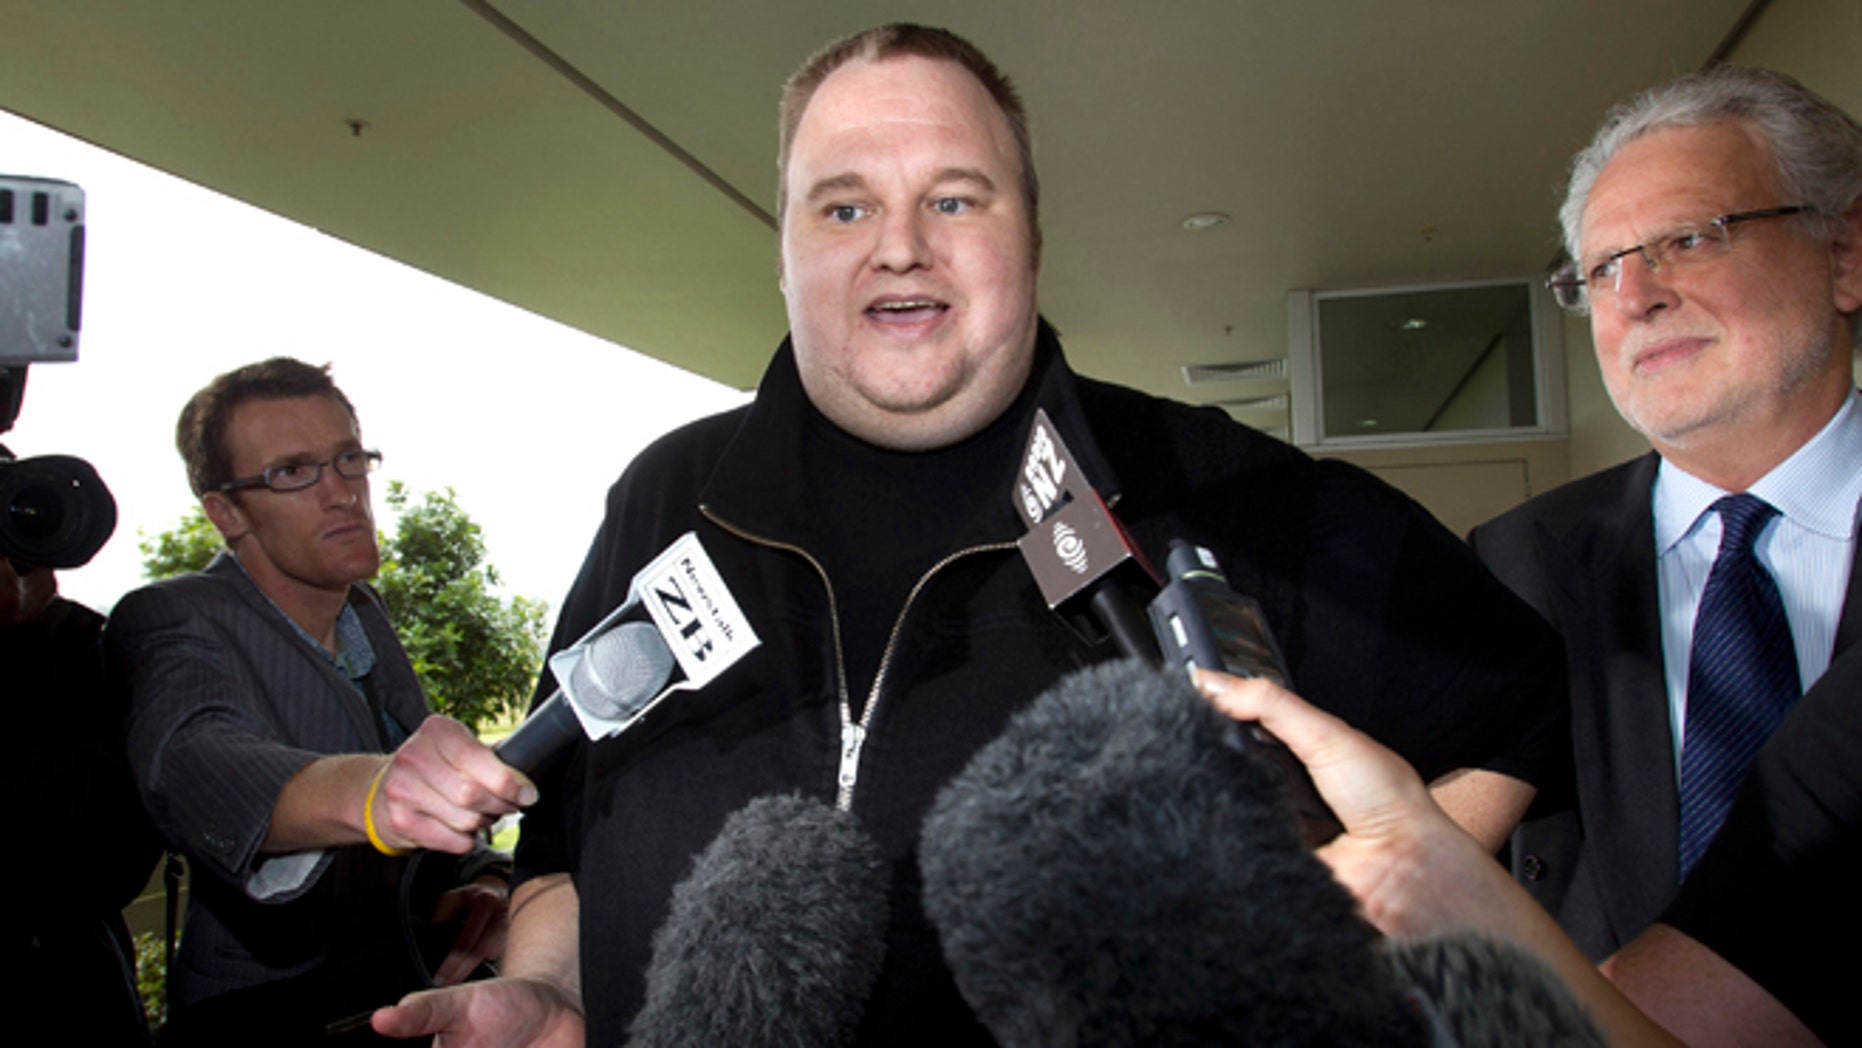 Feb. 22, 2012: Kim Dotcom, the founder of the file-sharing website Megaupload, comments after he was granted bail and released in Auckland, New Zealand.  In a move bound to provoke U.S. prosecutors and entertainment executives, Dotcom is planning to offer a new online music service and a replacement of his shuttered website by years end.